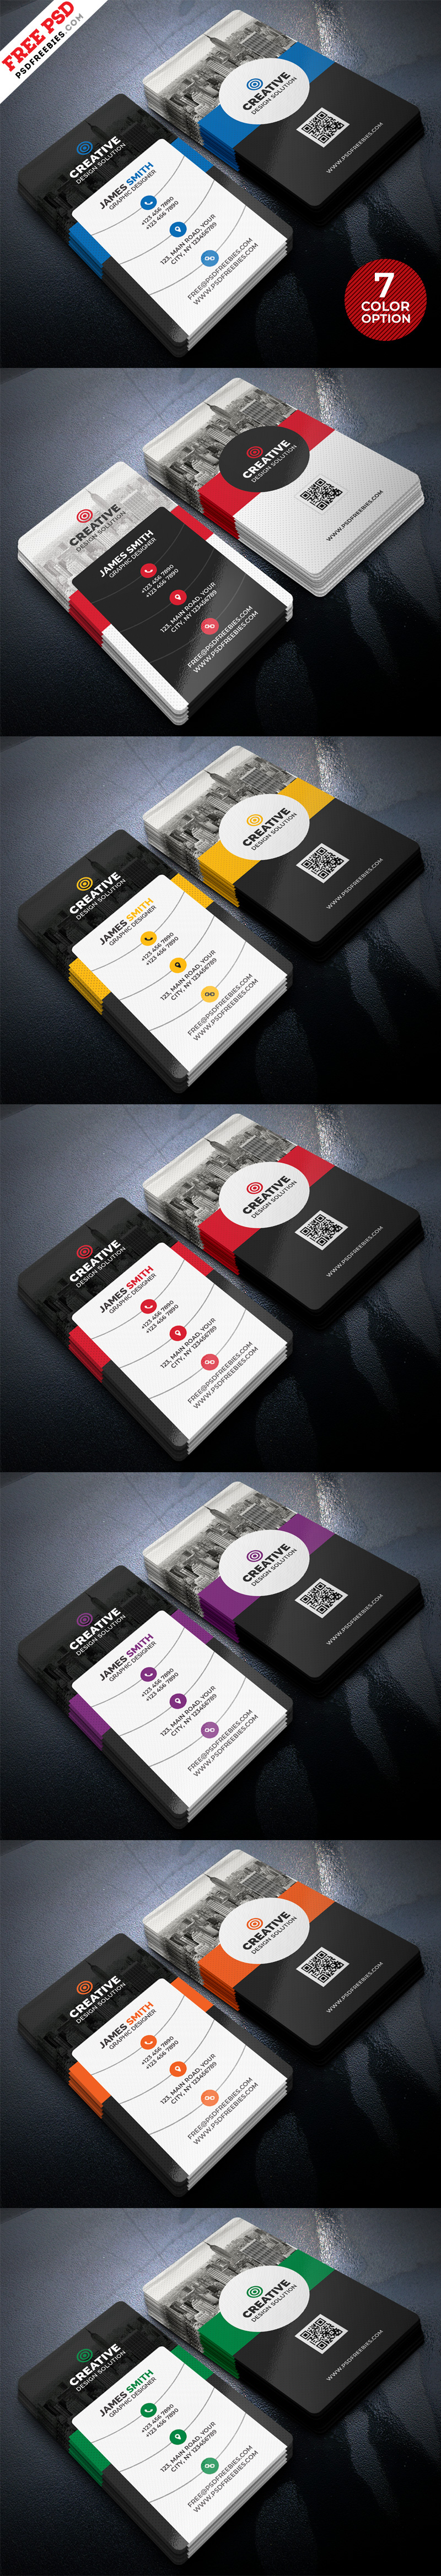 https://psdfreebies.com/wp-content/uploads/2018/02/Creative-Business-Cards-Templates-PSD-Bundle-Preview.jpg